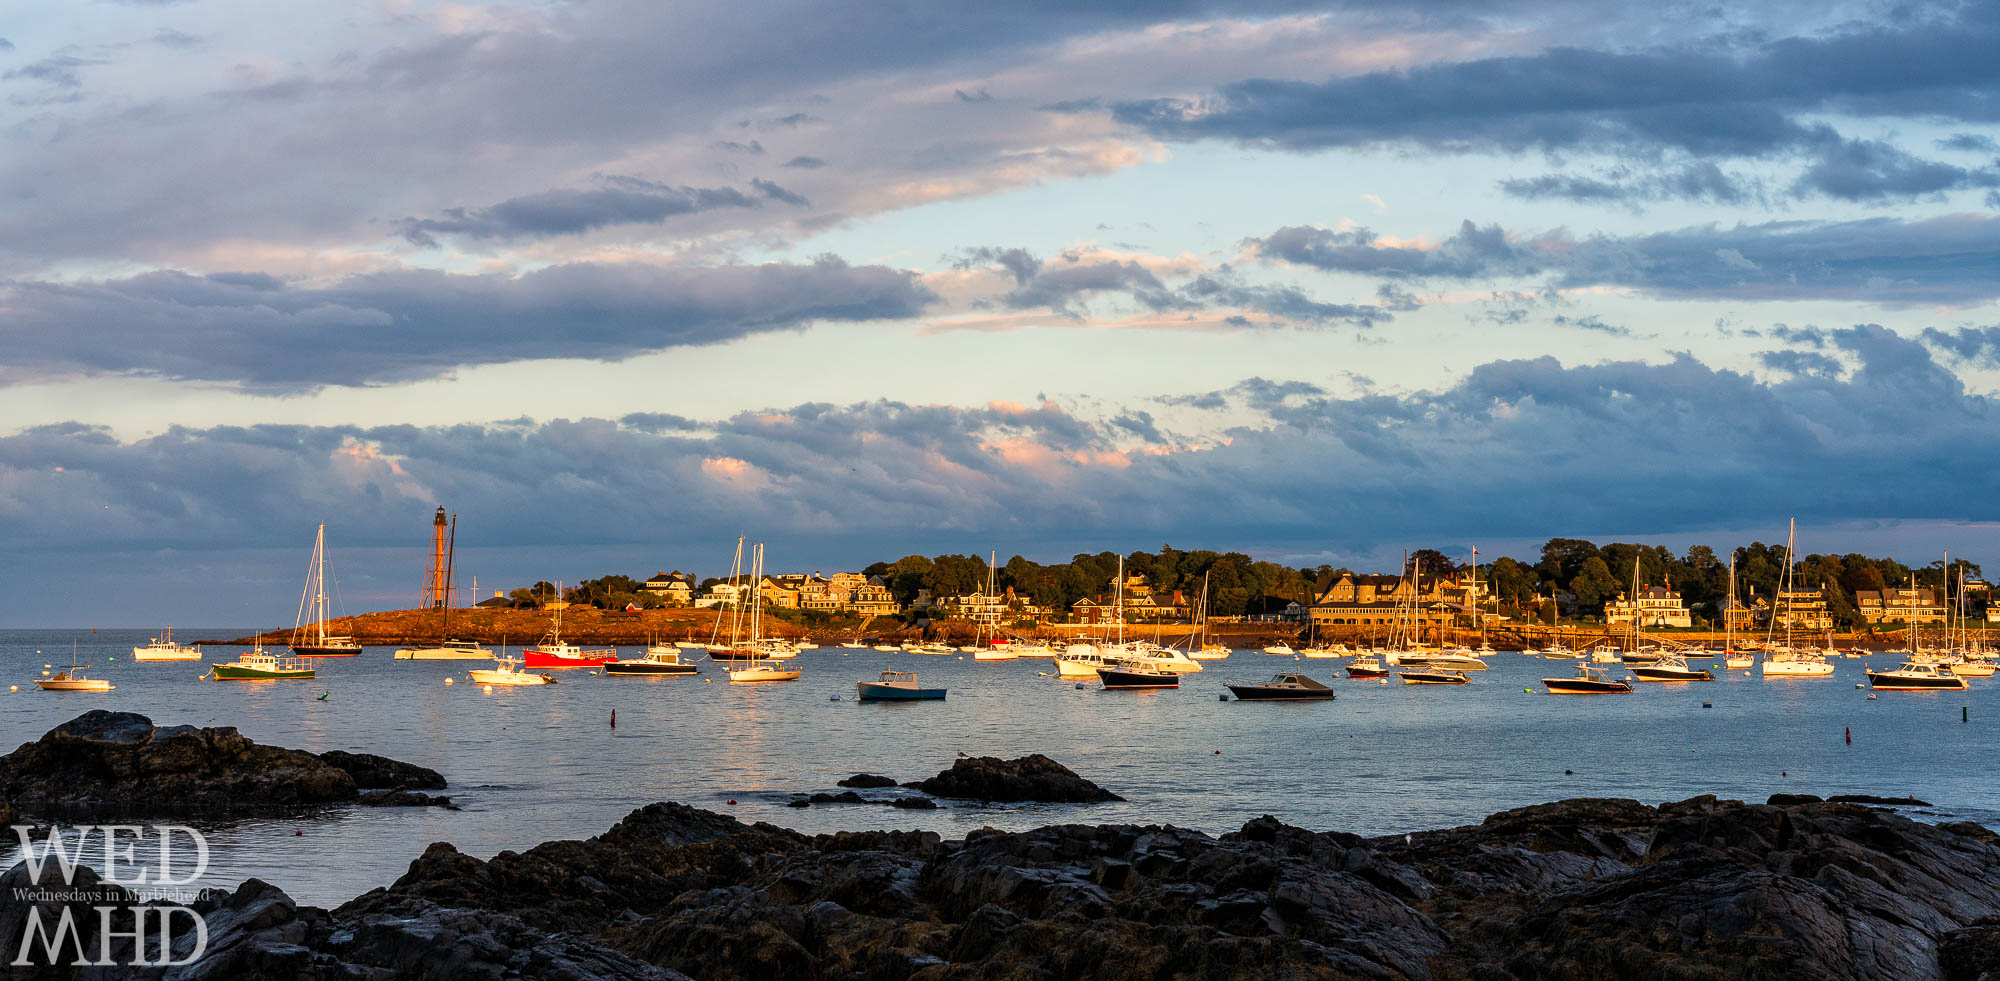 Marblehead Neck and Chandler Hovey Park seen bathing in light of a setting sun after storms pass over town on a mid-August evening